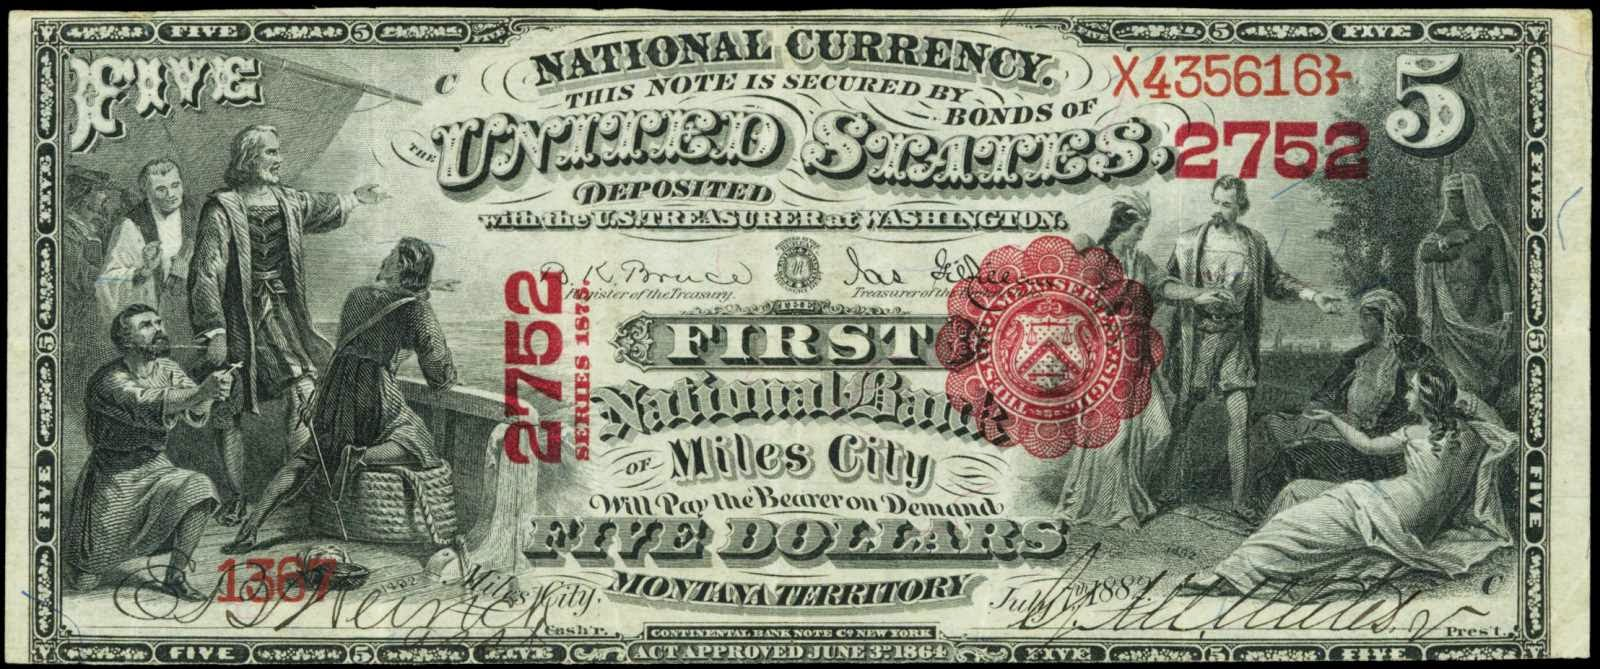 1875 5 Dollar Bill National Currency